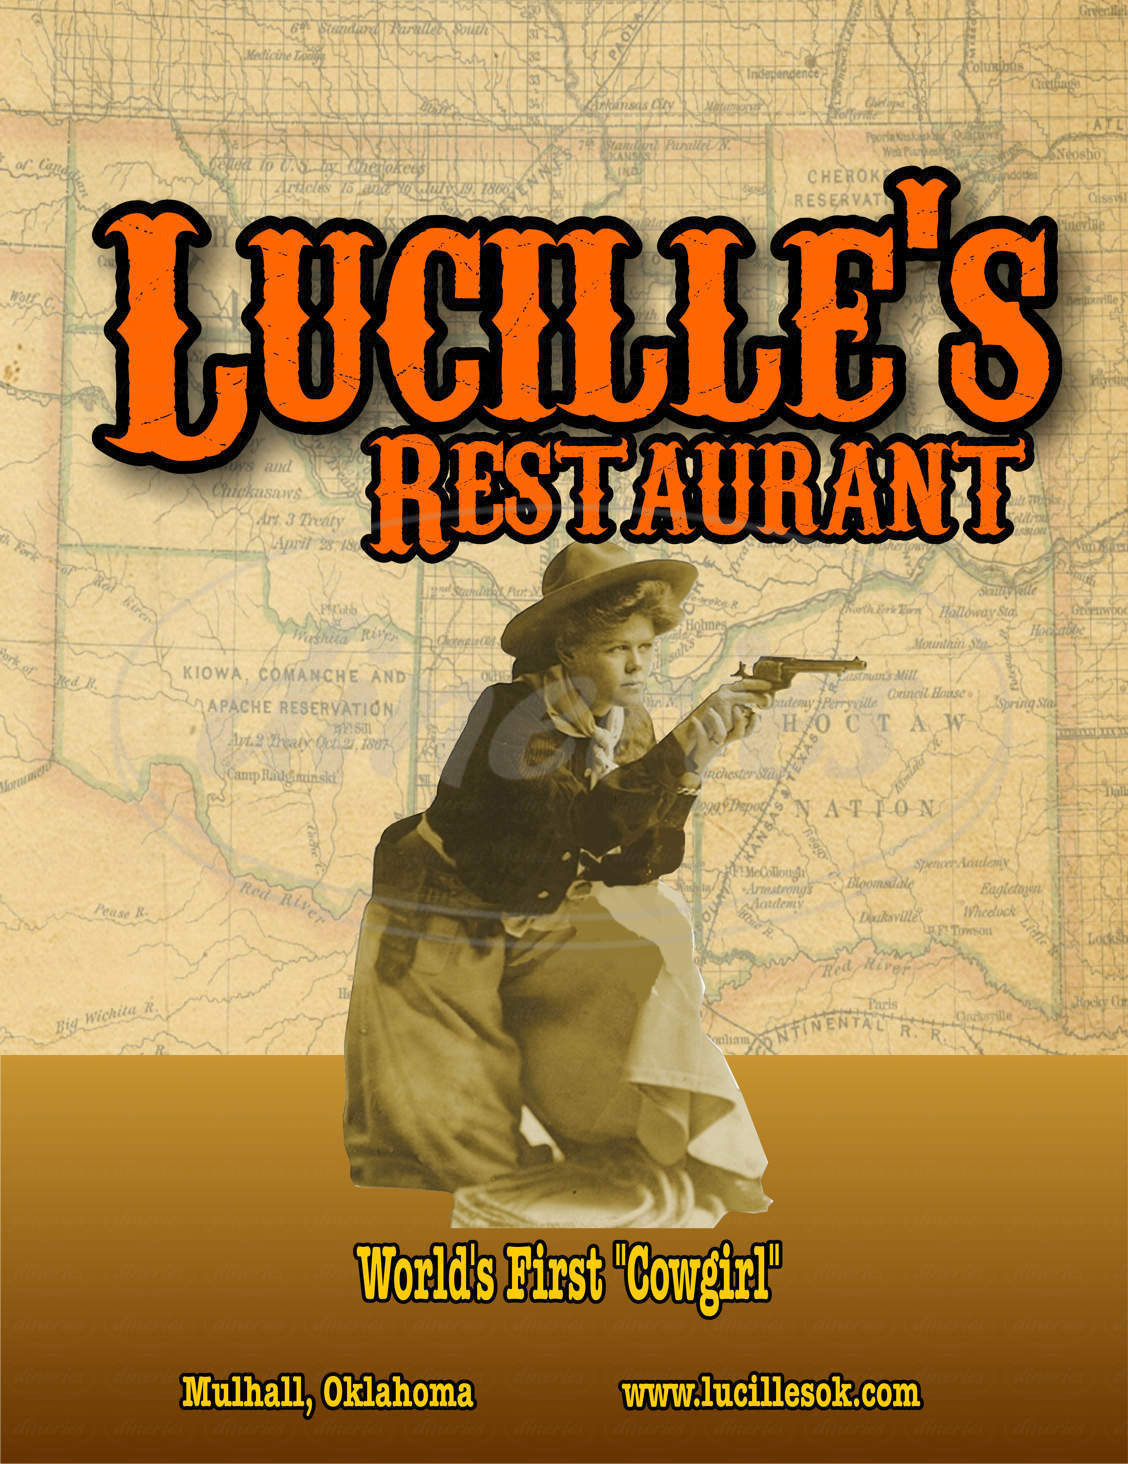 menu for Lucille's